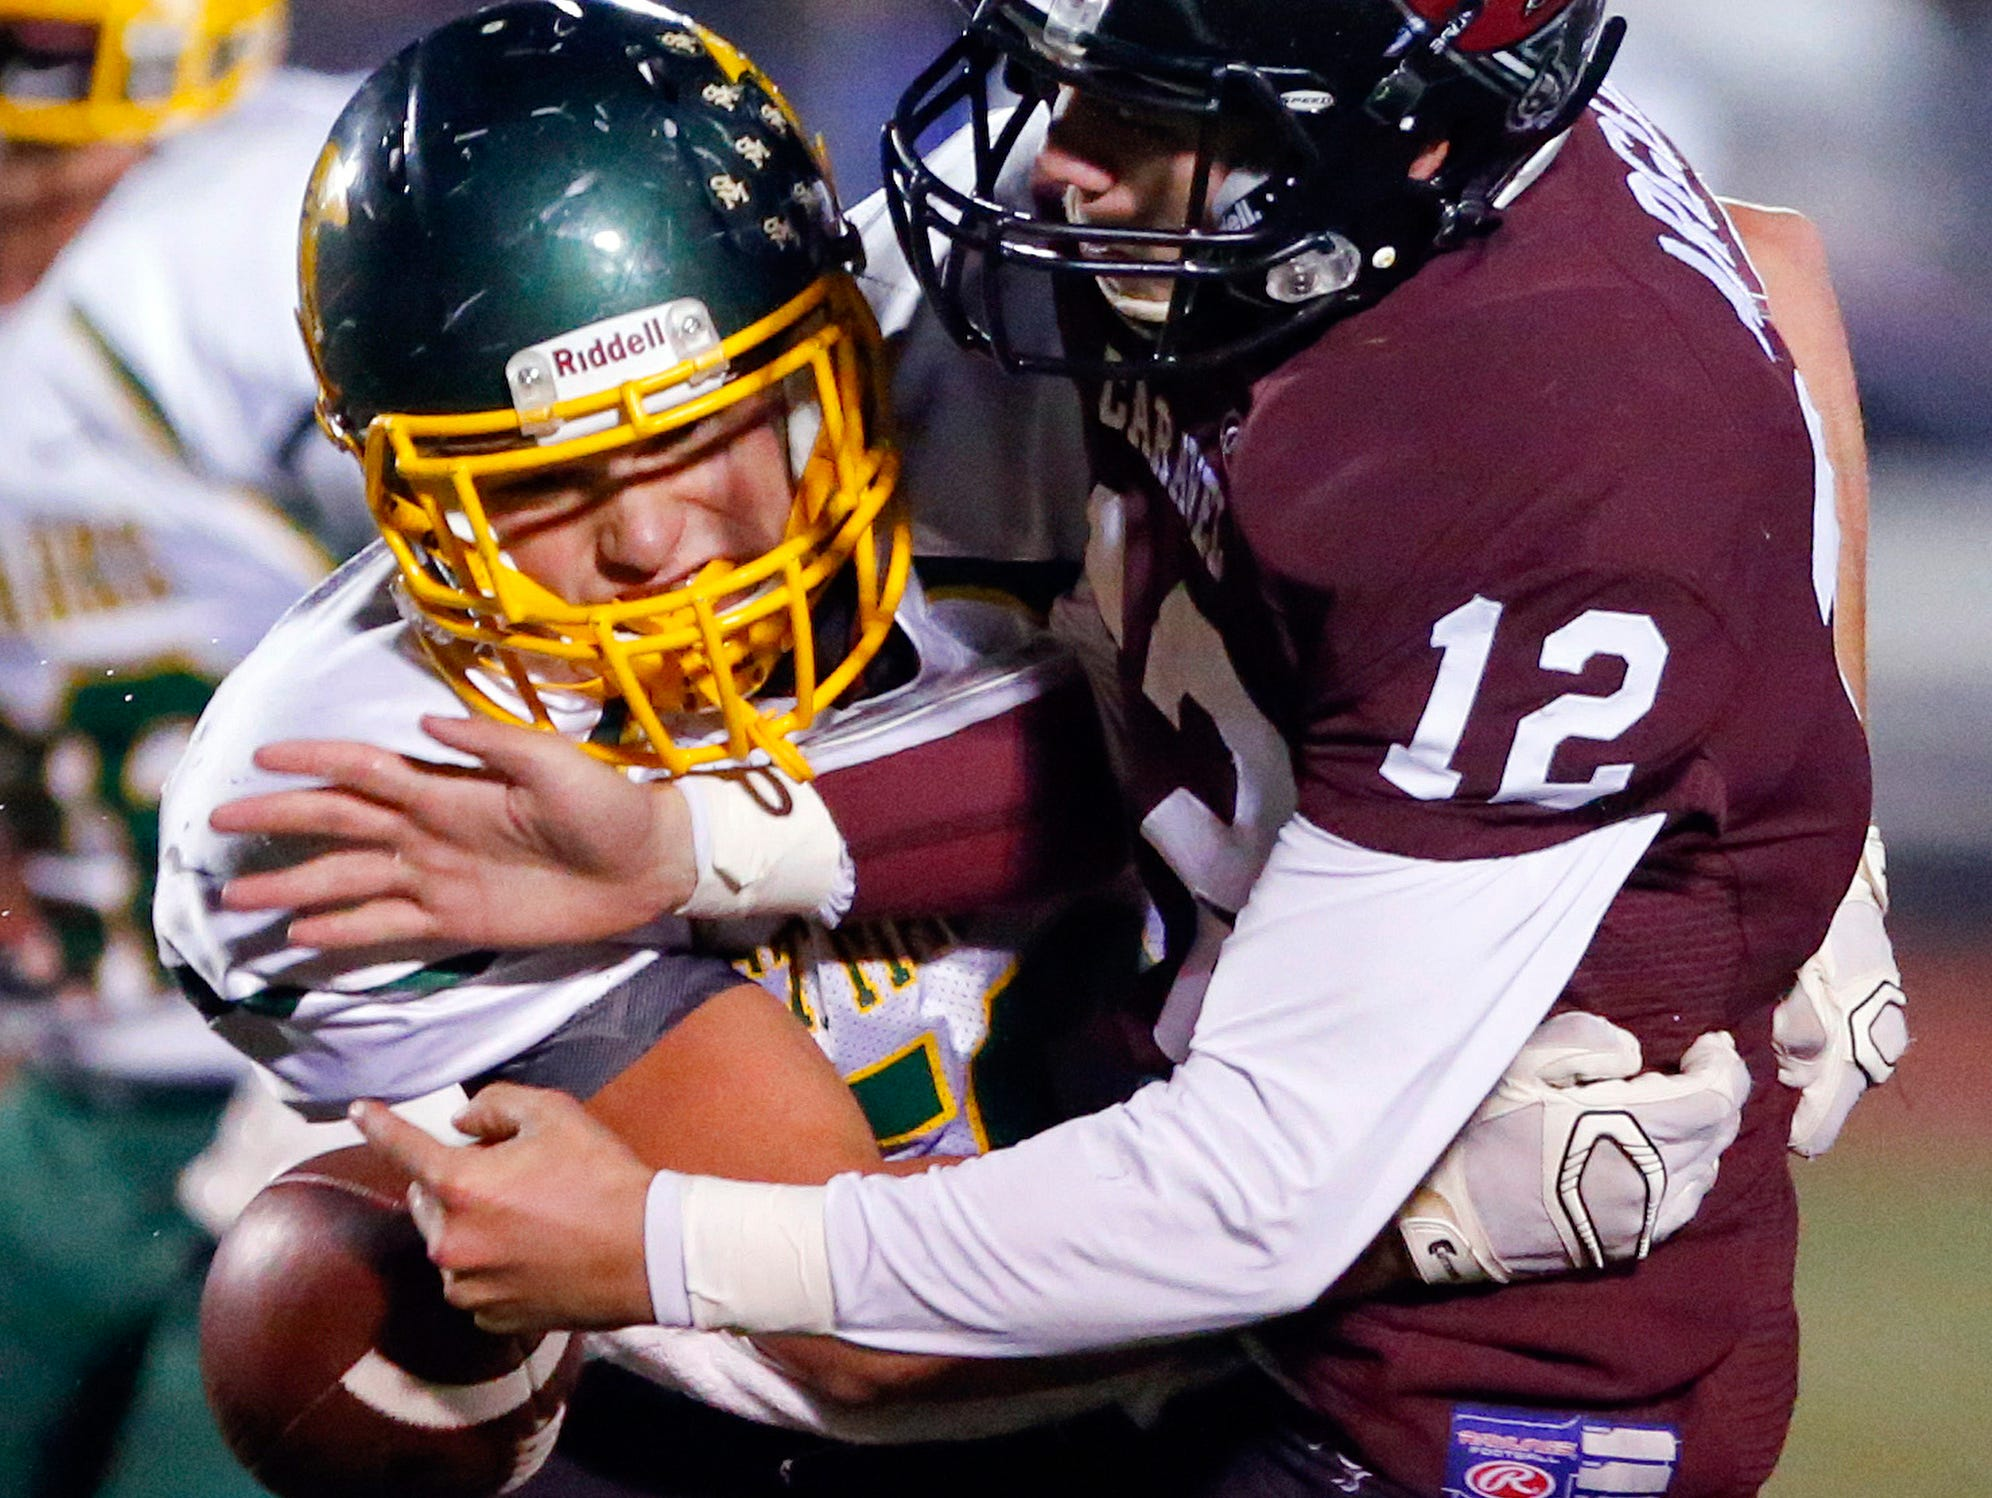 St. Mark's Anthony McGonigle (left) breaks in on Caravel quarterback Jackson Argoe and forces a fumble in the first quarter at Caravel Academy Friday.